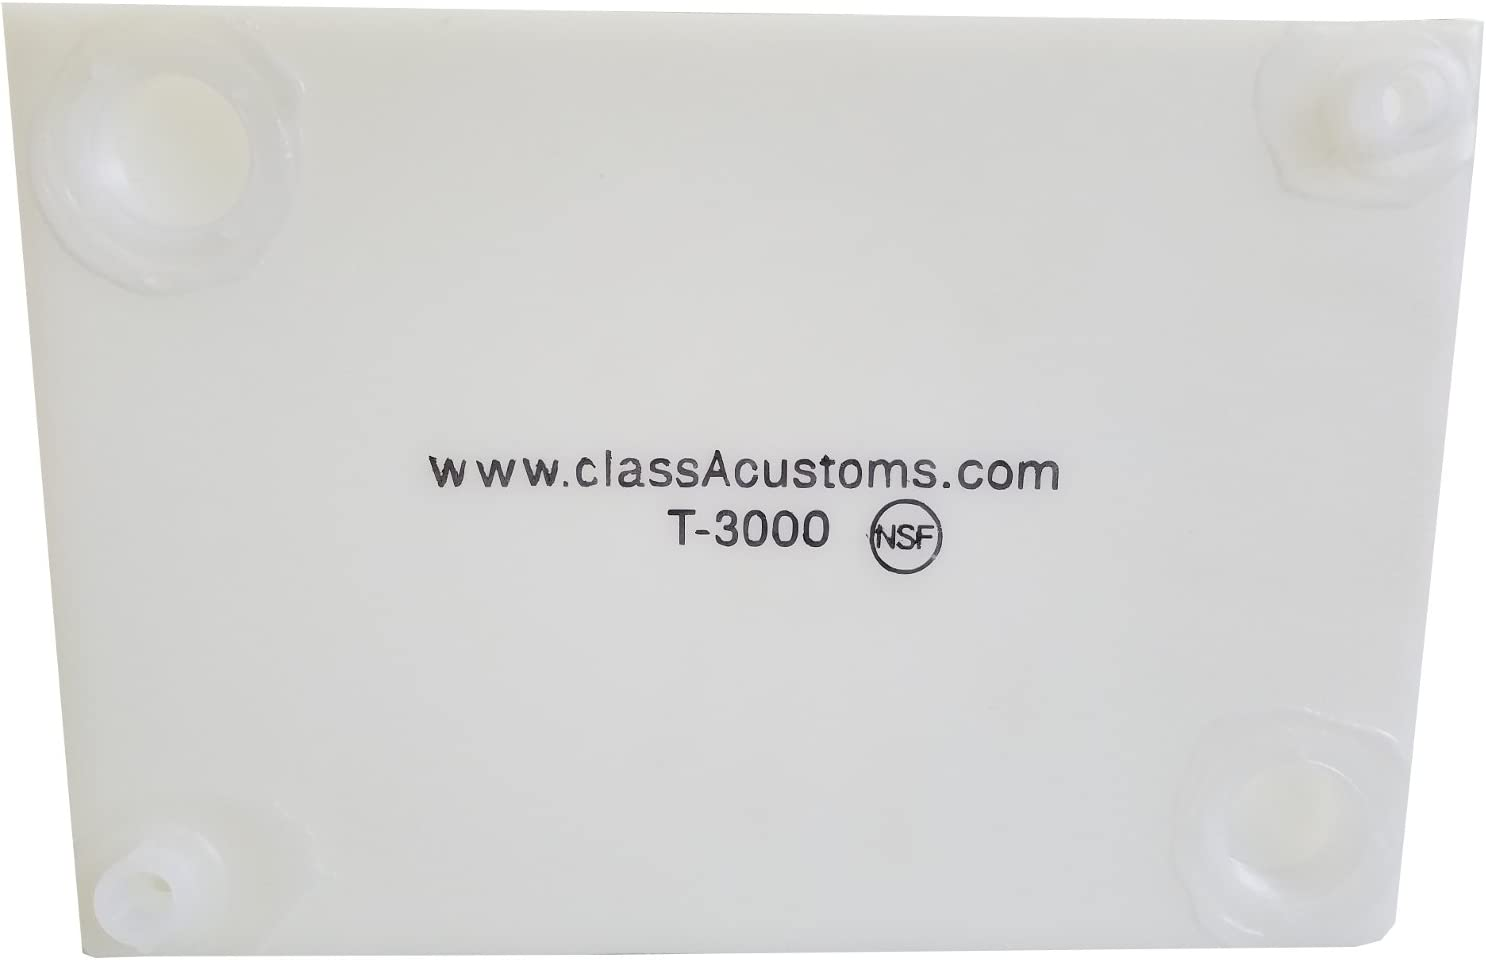 RV Water Holding Tanks Class A Customs | NSF//CSA//FDA Certified 23 Gallon /& 30 Gallon RV Fresh and Gray Water Tank Combo Pack